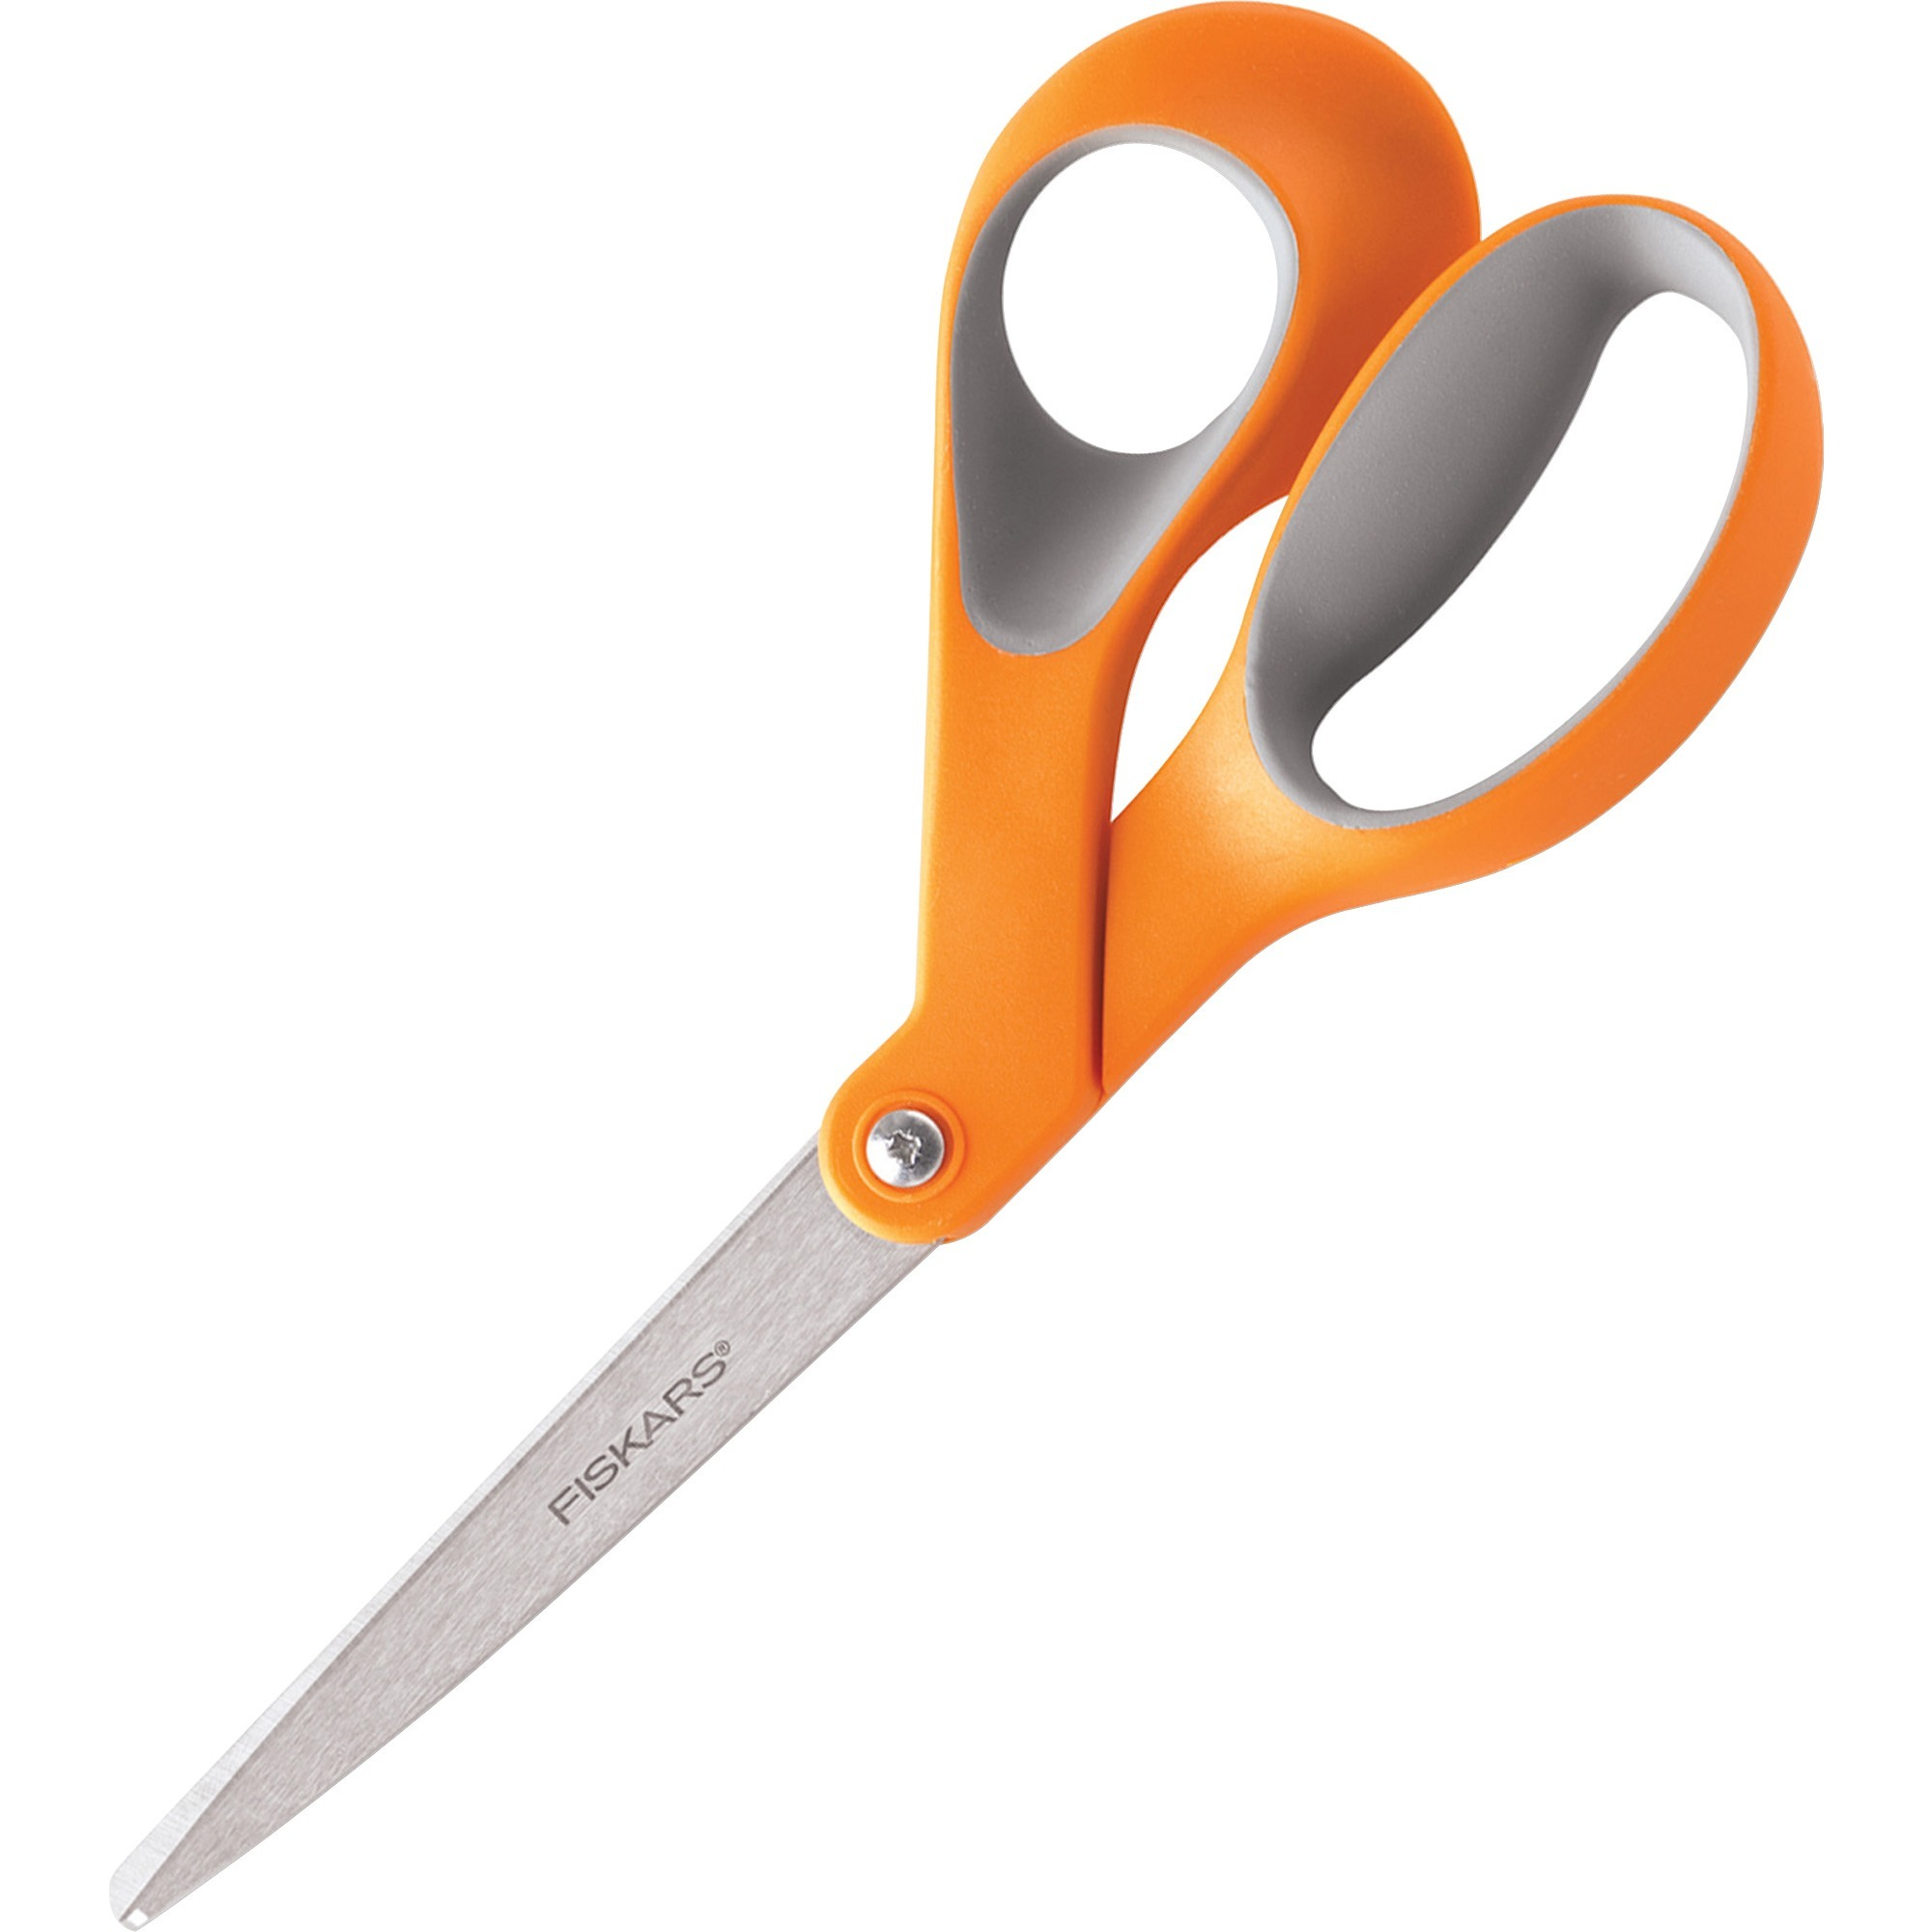 Fiskars, FSK01009881, Bent Ergonomic Scissors, 1 Each, Orange